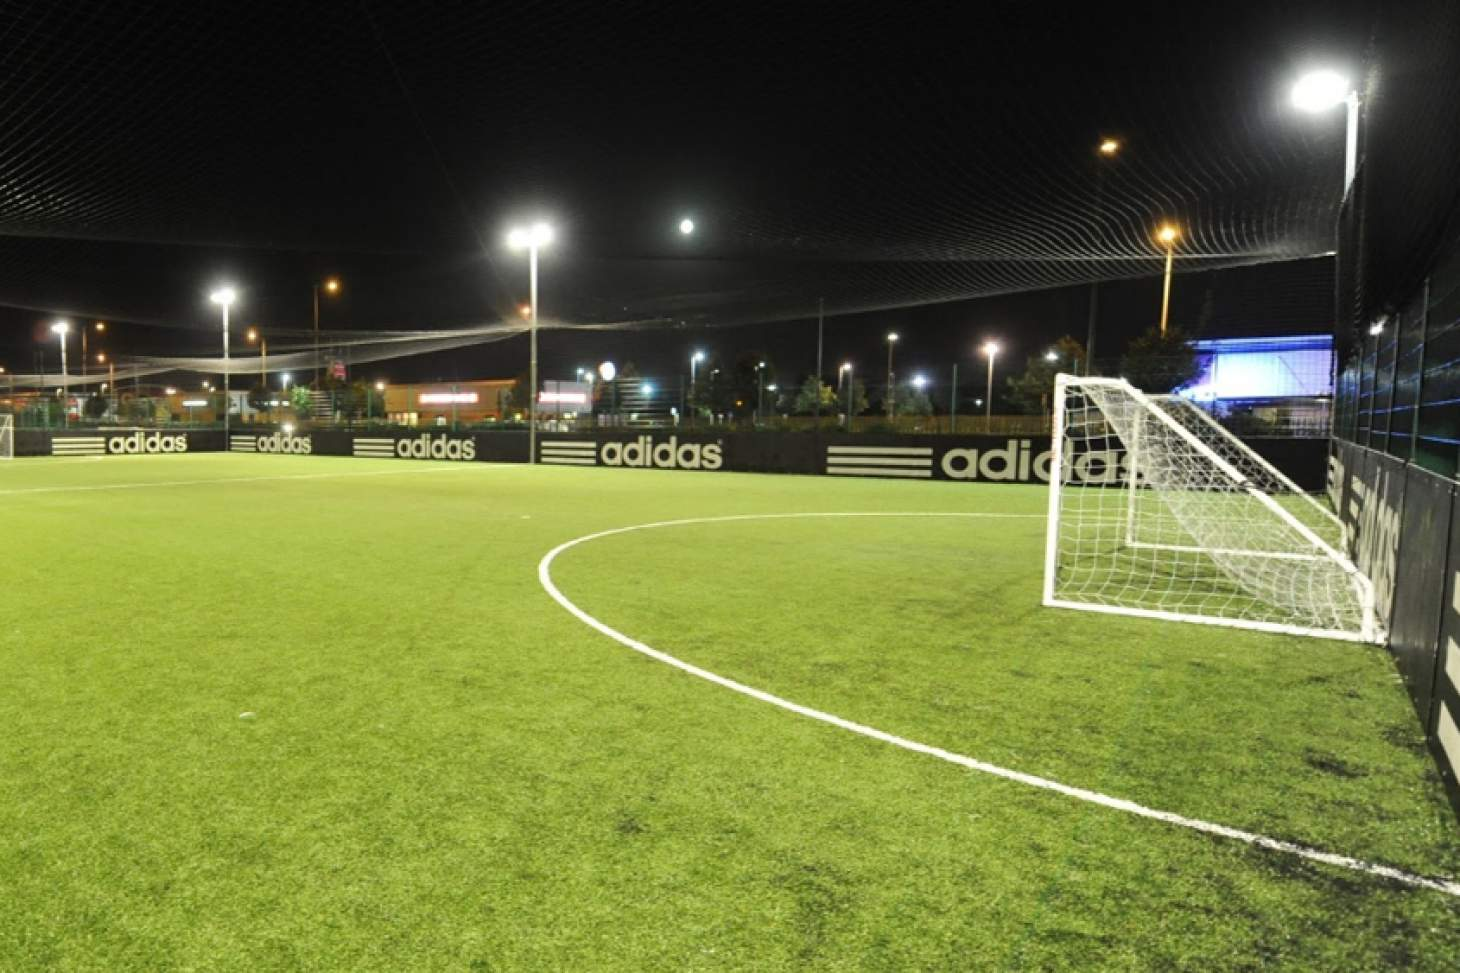 PlayFootball Liverpool 7 a side | 3G Astroturf football pitch